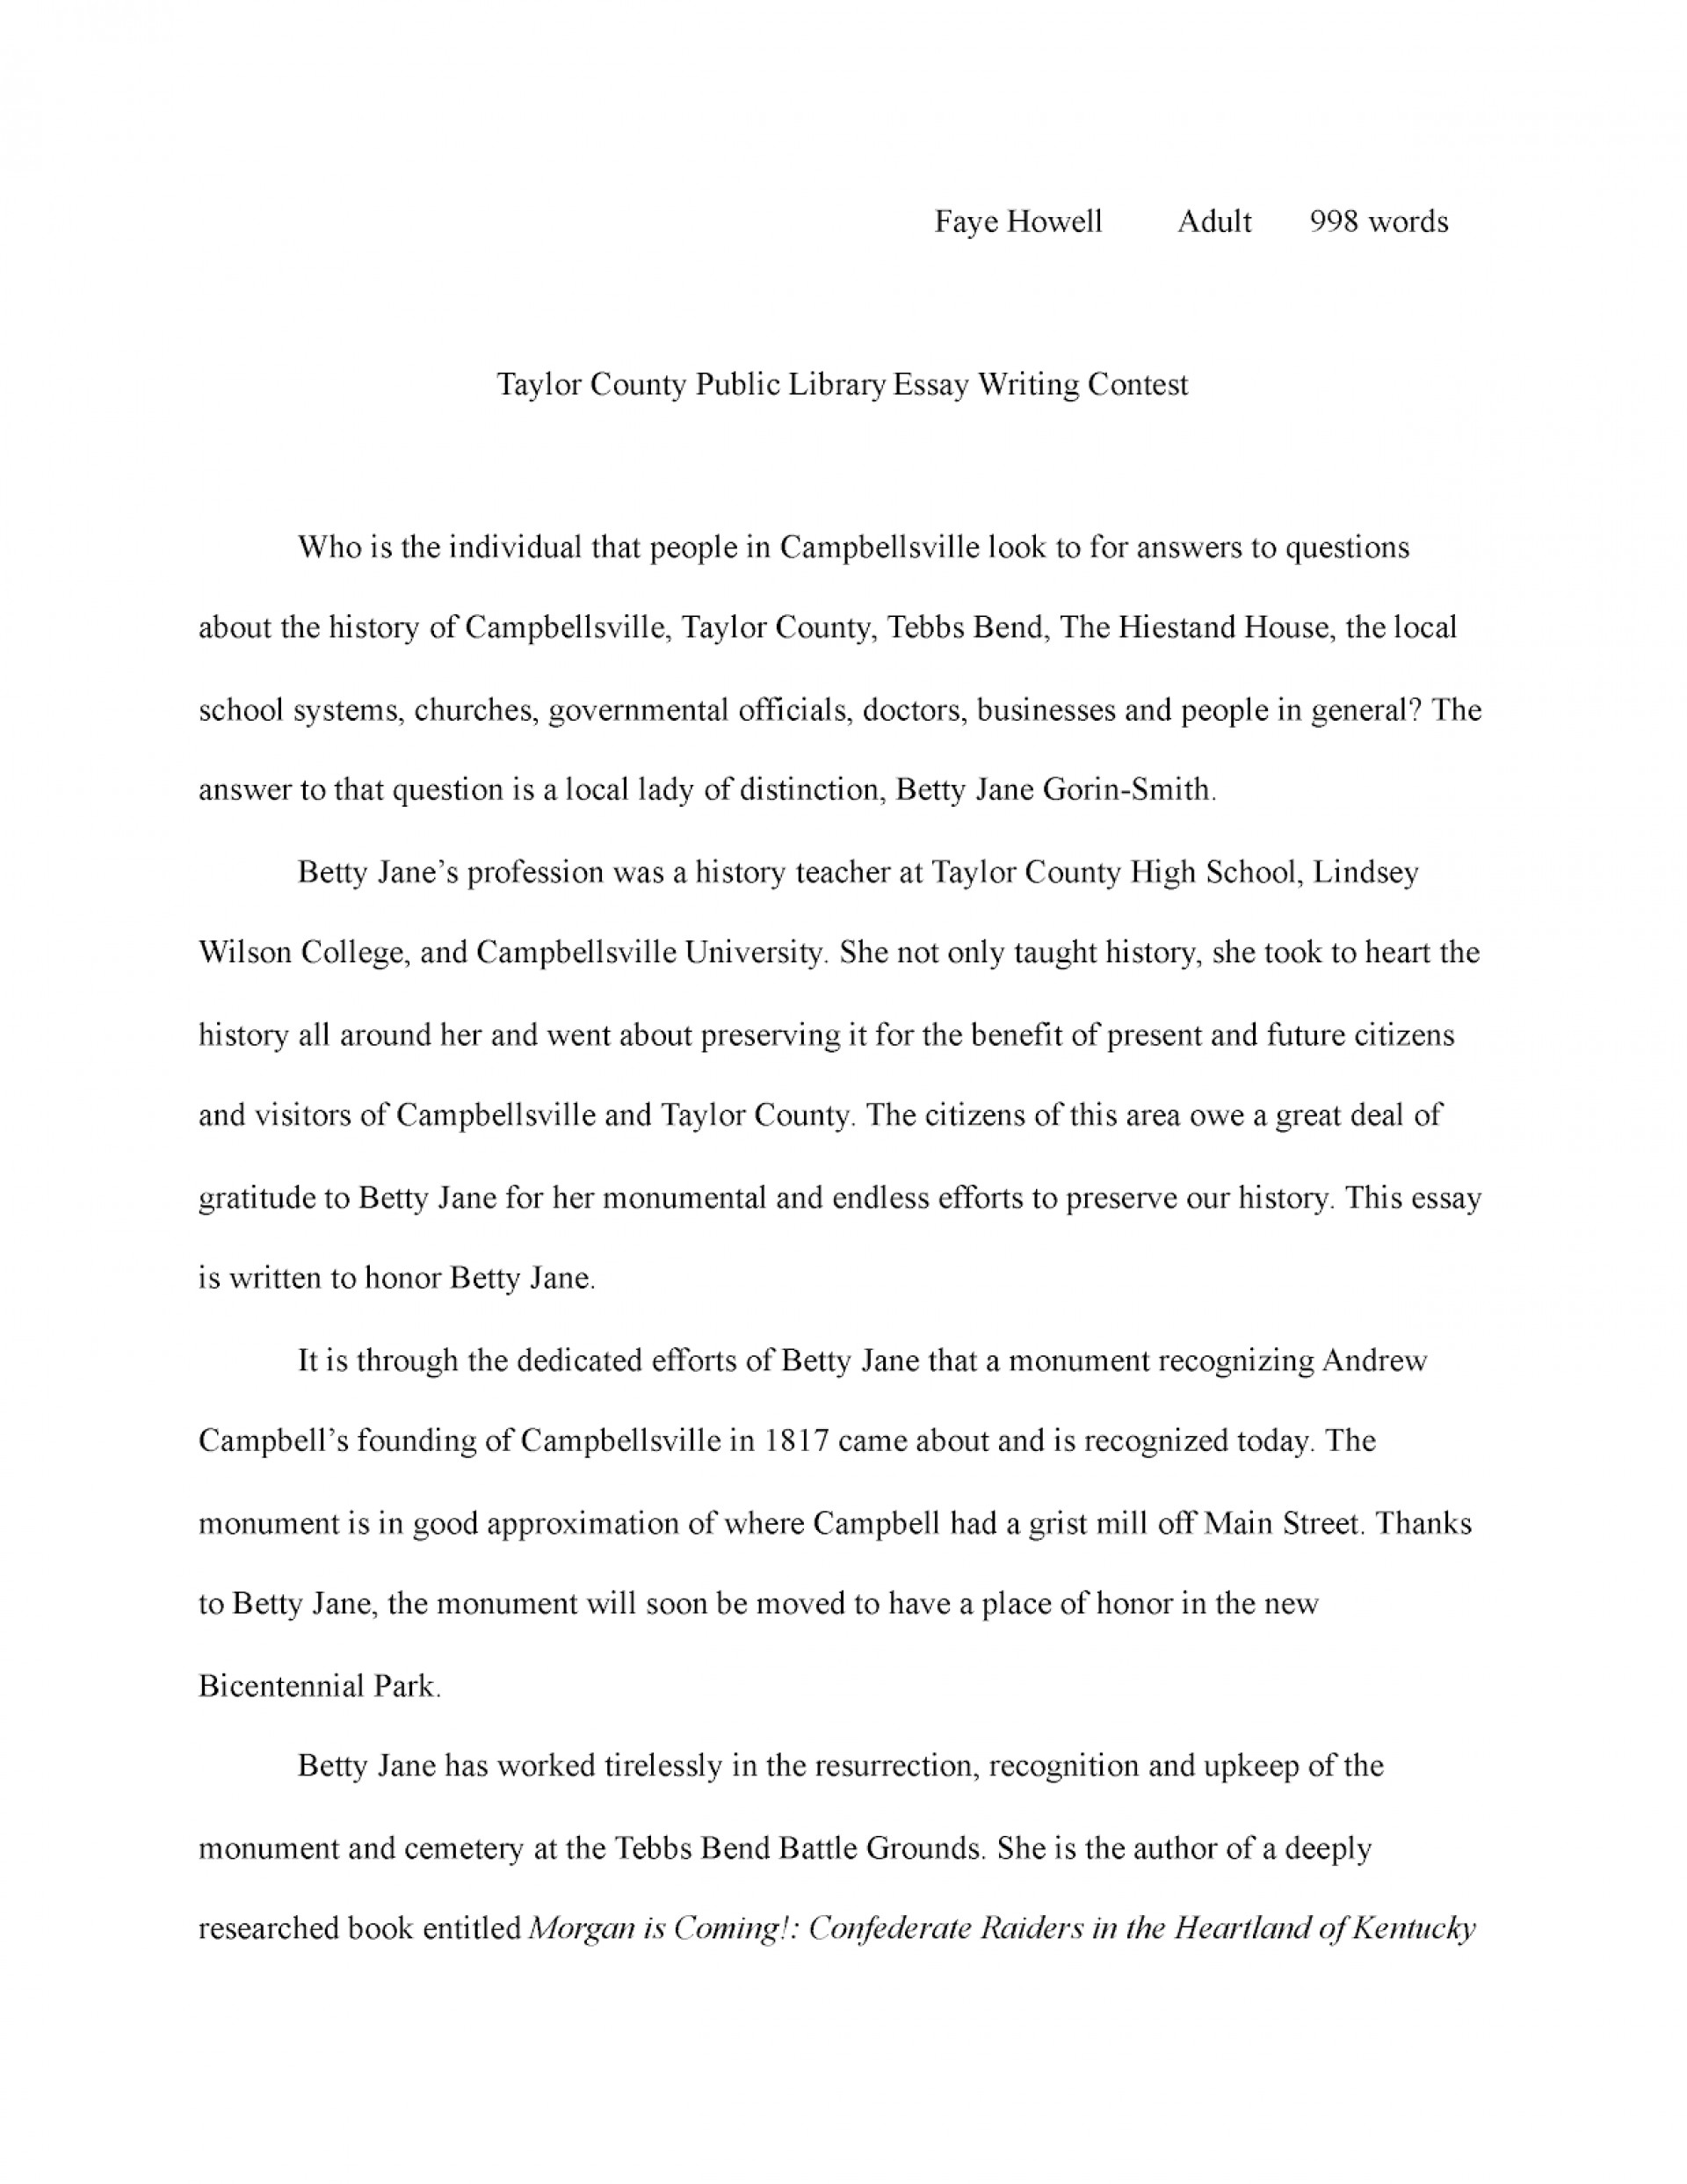 006 Research Paper Essay2bwriting2bcontest12bhowell Art History Amazing Examples 1920